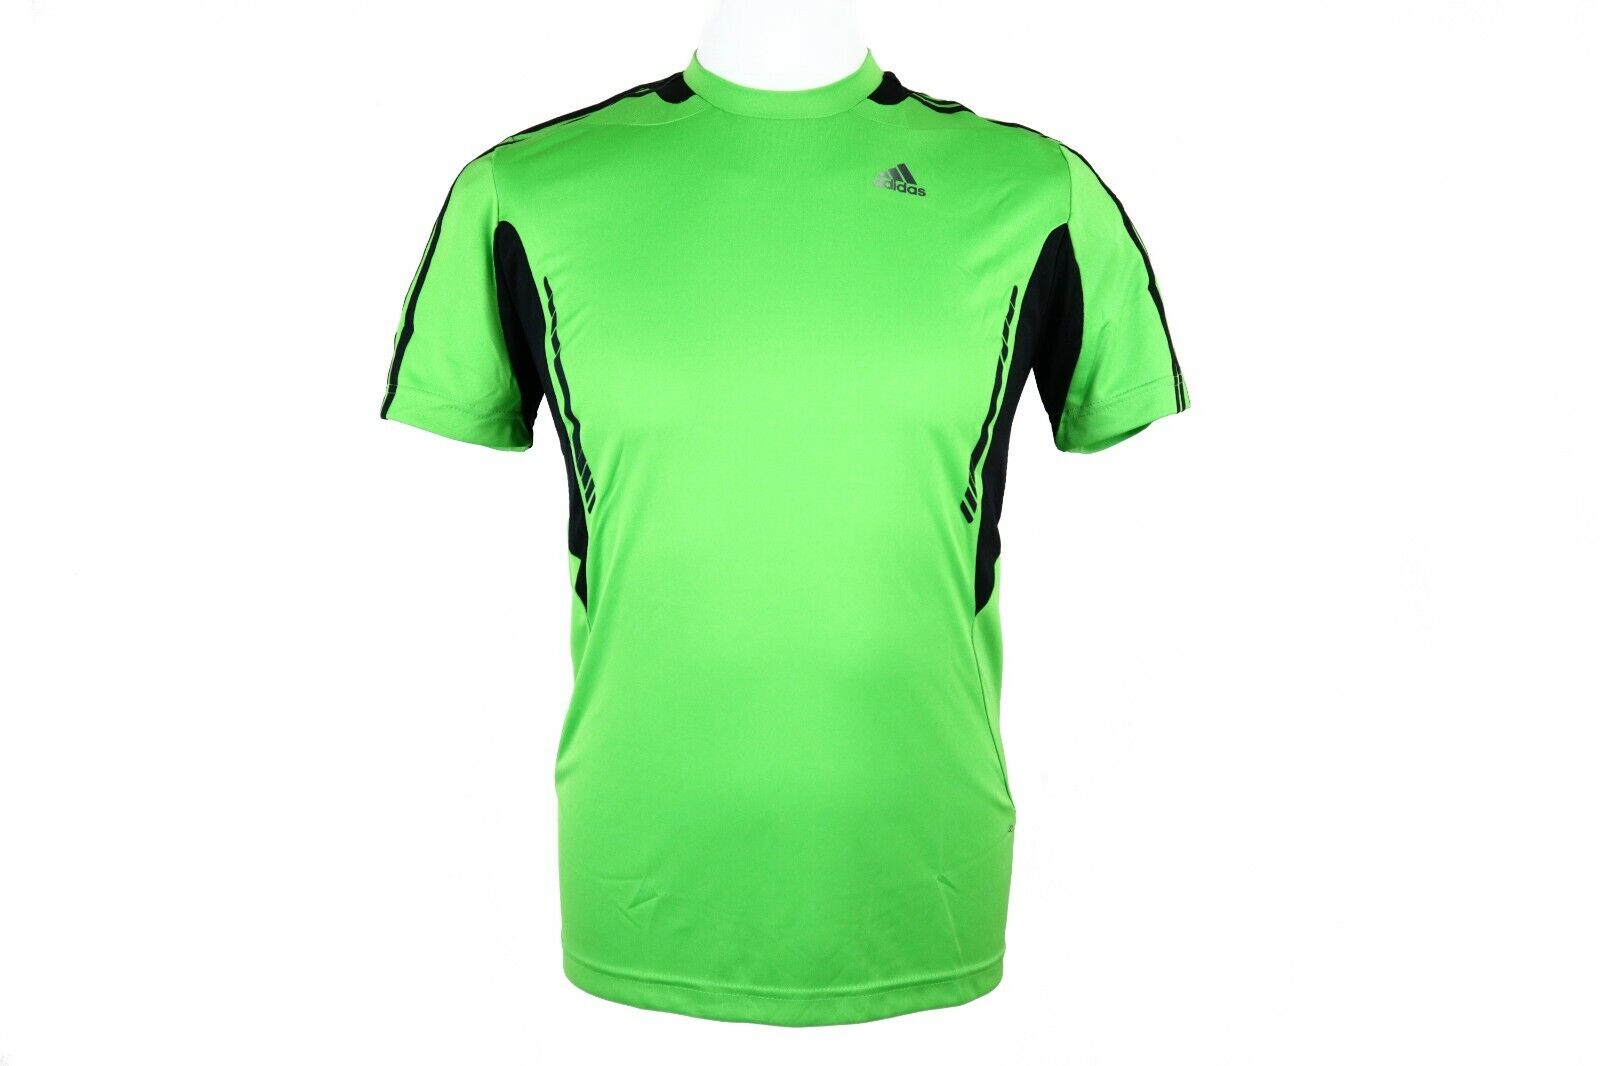 Details about Adidas Mens Green Climacool 365 Sports Polo Shirt Running Gym T Shirt Top New